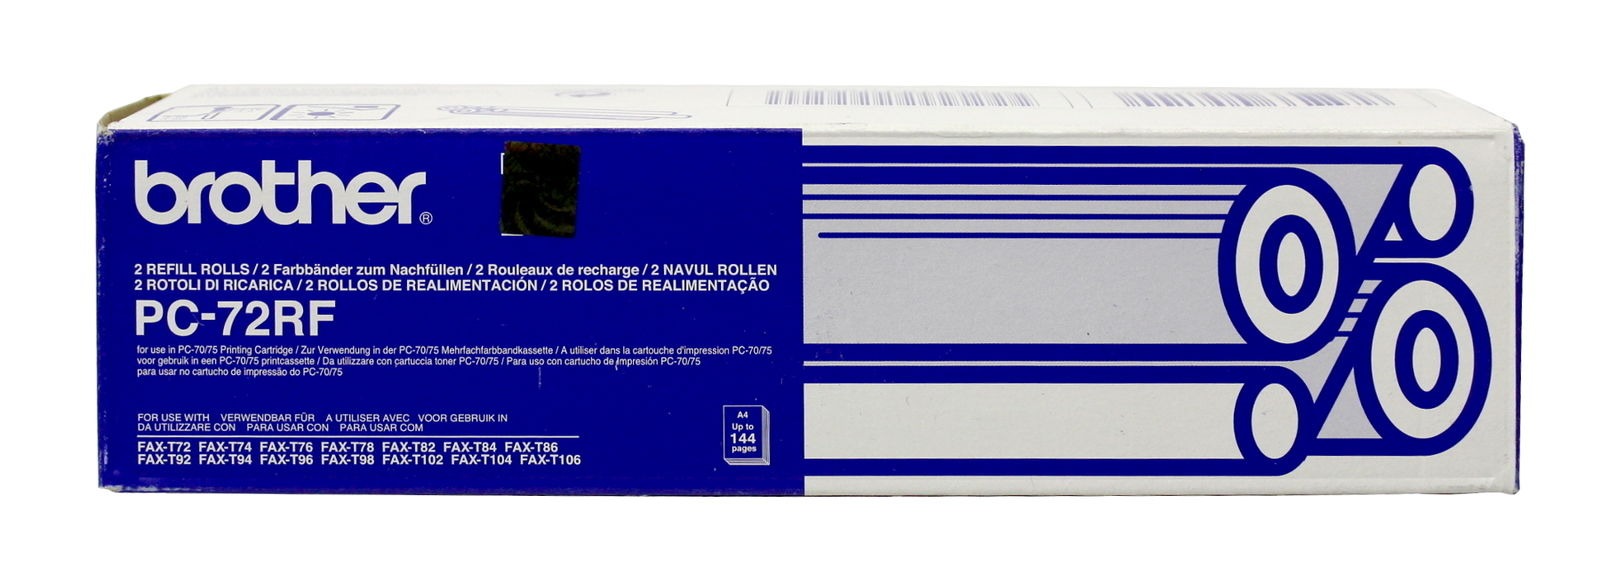 brother pc 72rf black thermal transfer ribbon fax t102 genuine new sealed ebay. Black Bedroom Furniture Sets. Home Design Ideas